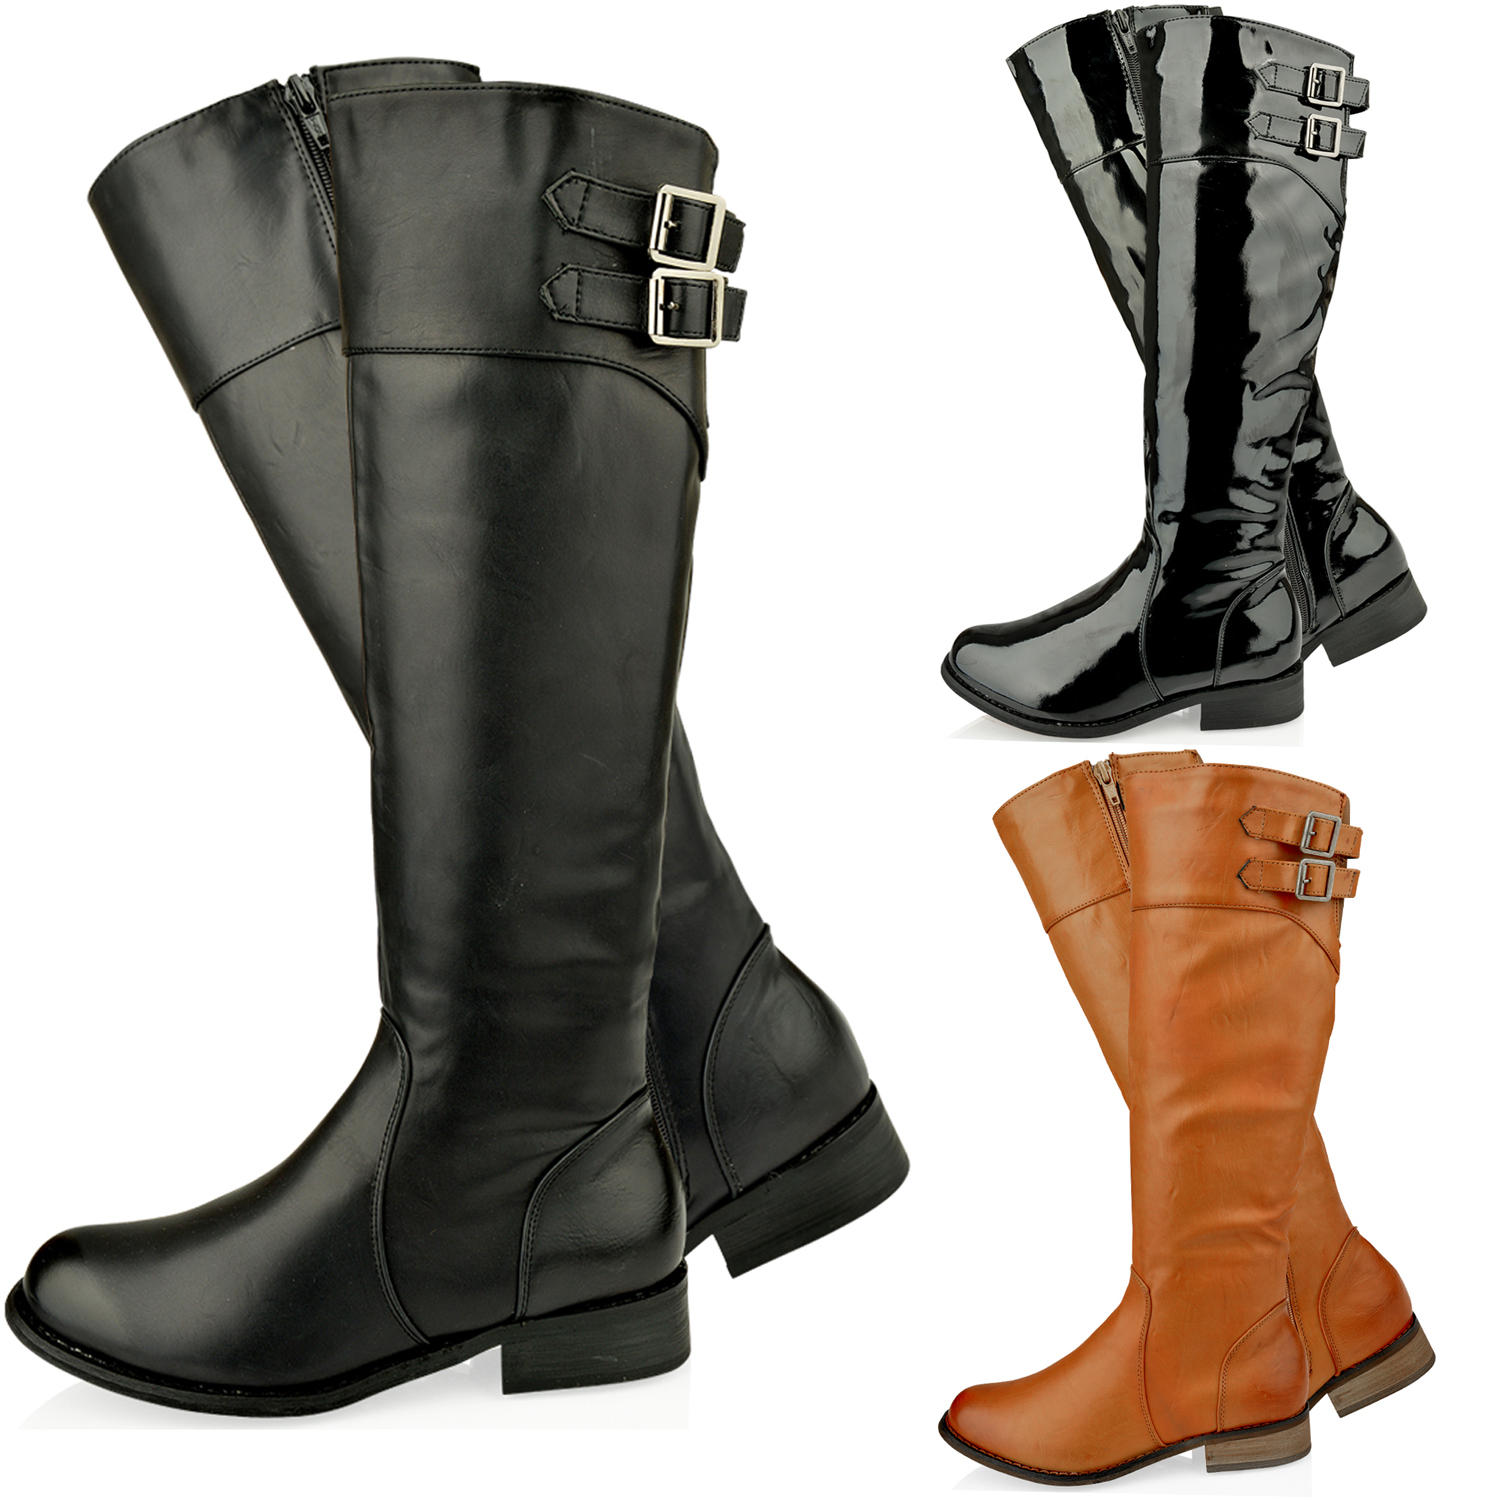 WOMENS-LADIES-KNEE-HIGH-FLAT-ZIP-FASHION-RIDING-WINTER-LOW-HEEL-BOOTS-SHOES-SIZE